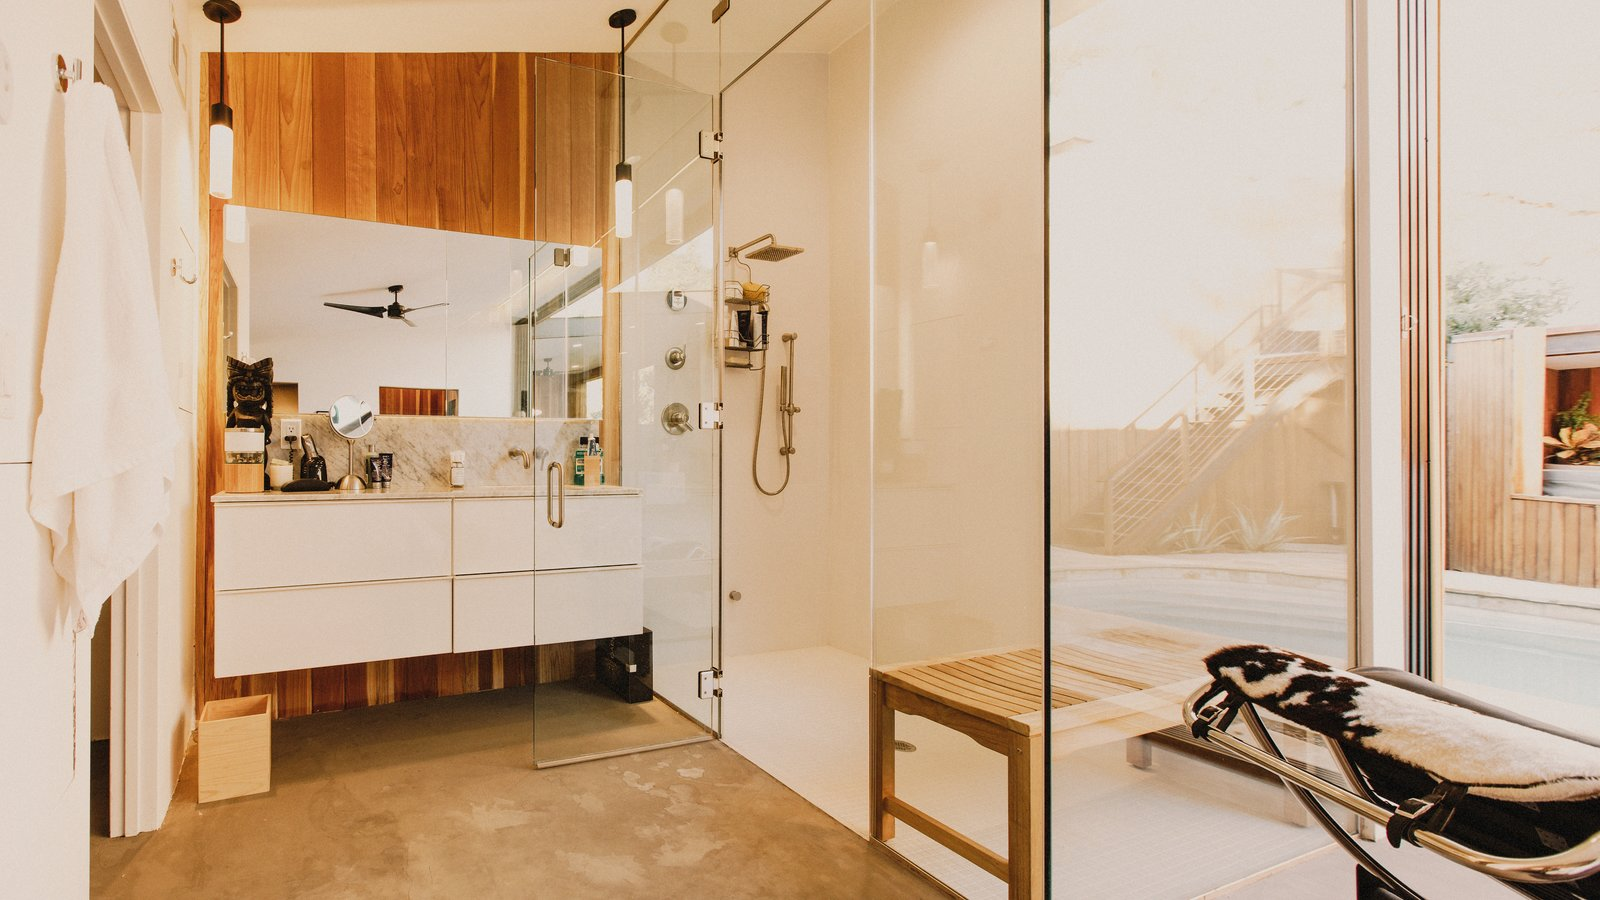 Bath Room, Concrete Floor, Undermount Sink, Pendant Lighting, Porcelain Tile Wall, Enclosed Shower, Marble Counter, Ceiling Lighting, and Two Piece Toilet Master bathroom featuring a steam shower  Curves House by The Ranch Mine